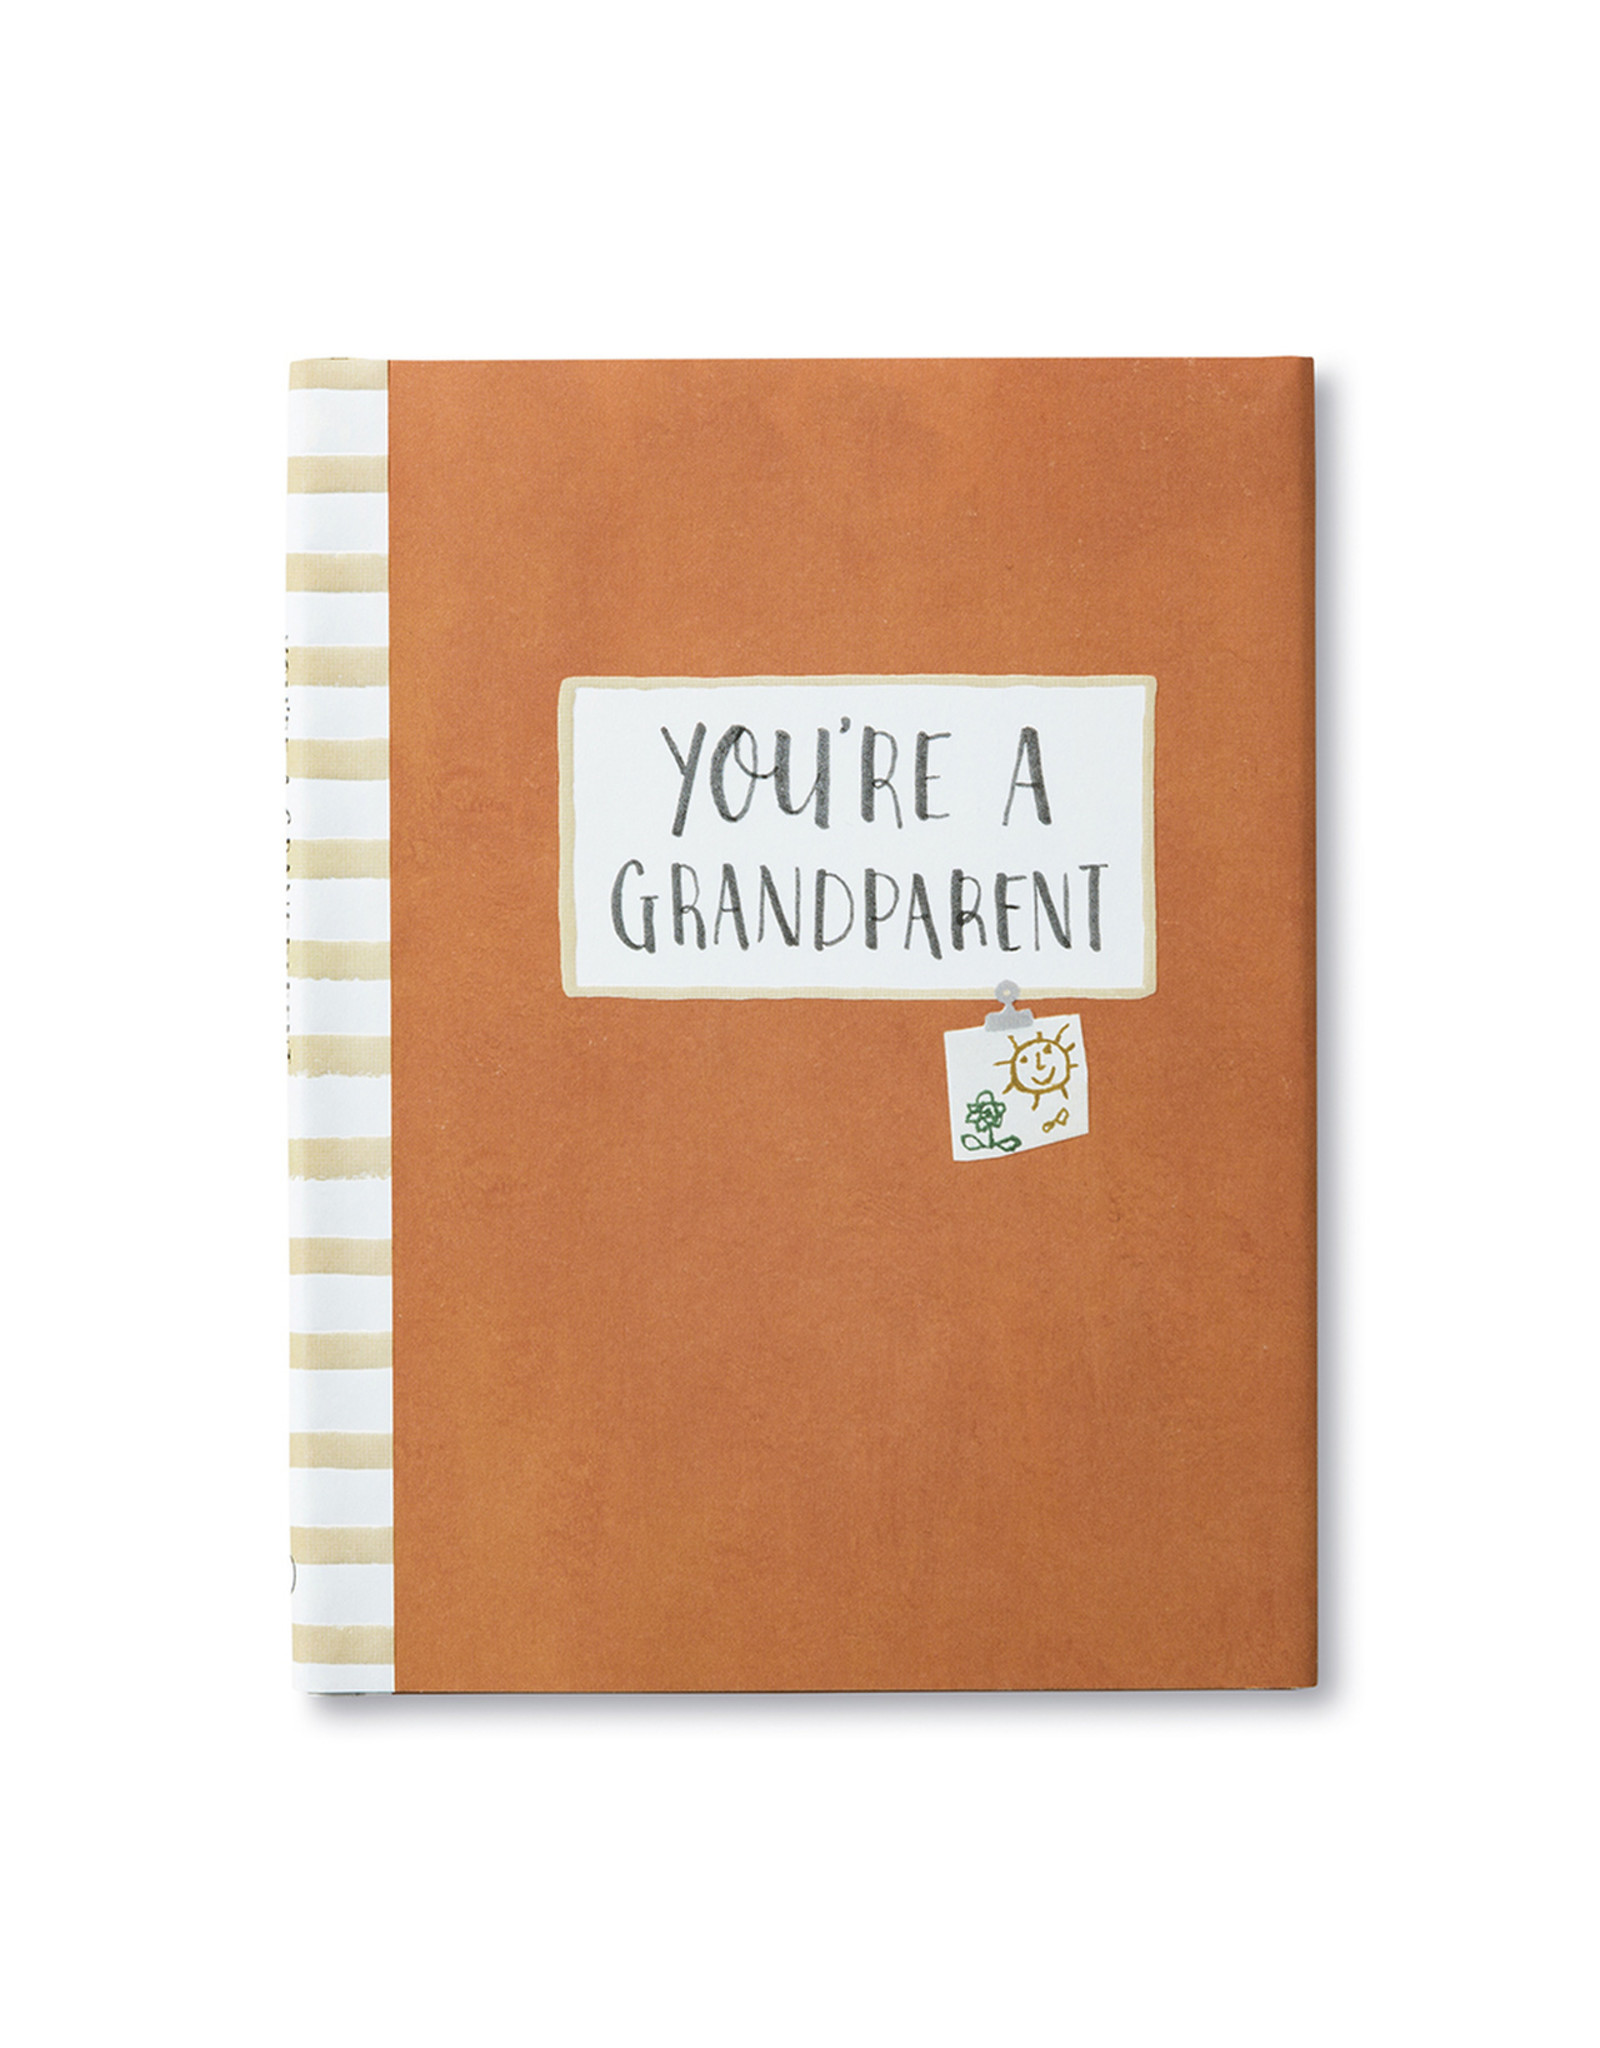 You're A Grandparent book